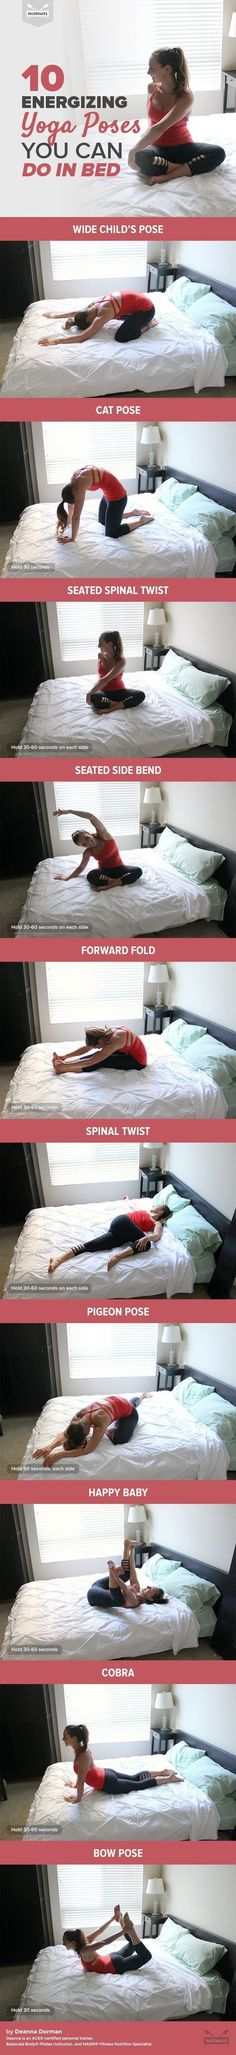 Awesome!! 10 Energizing Yoga Poses You Can Do in Bed...